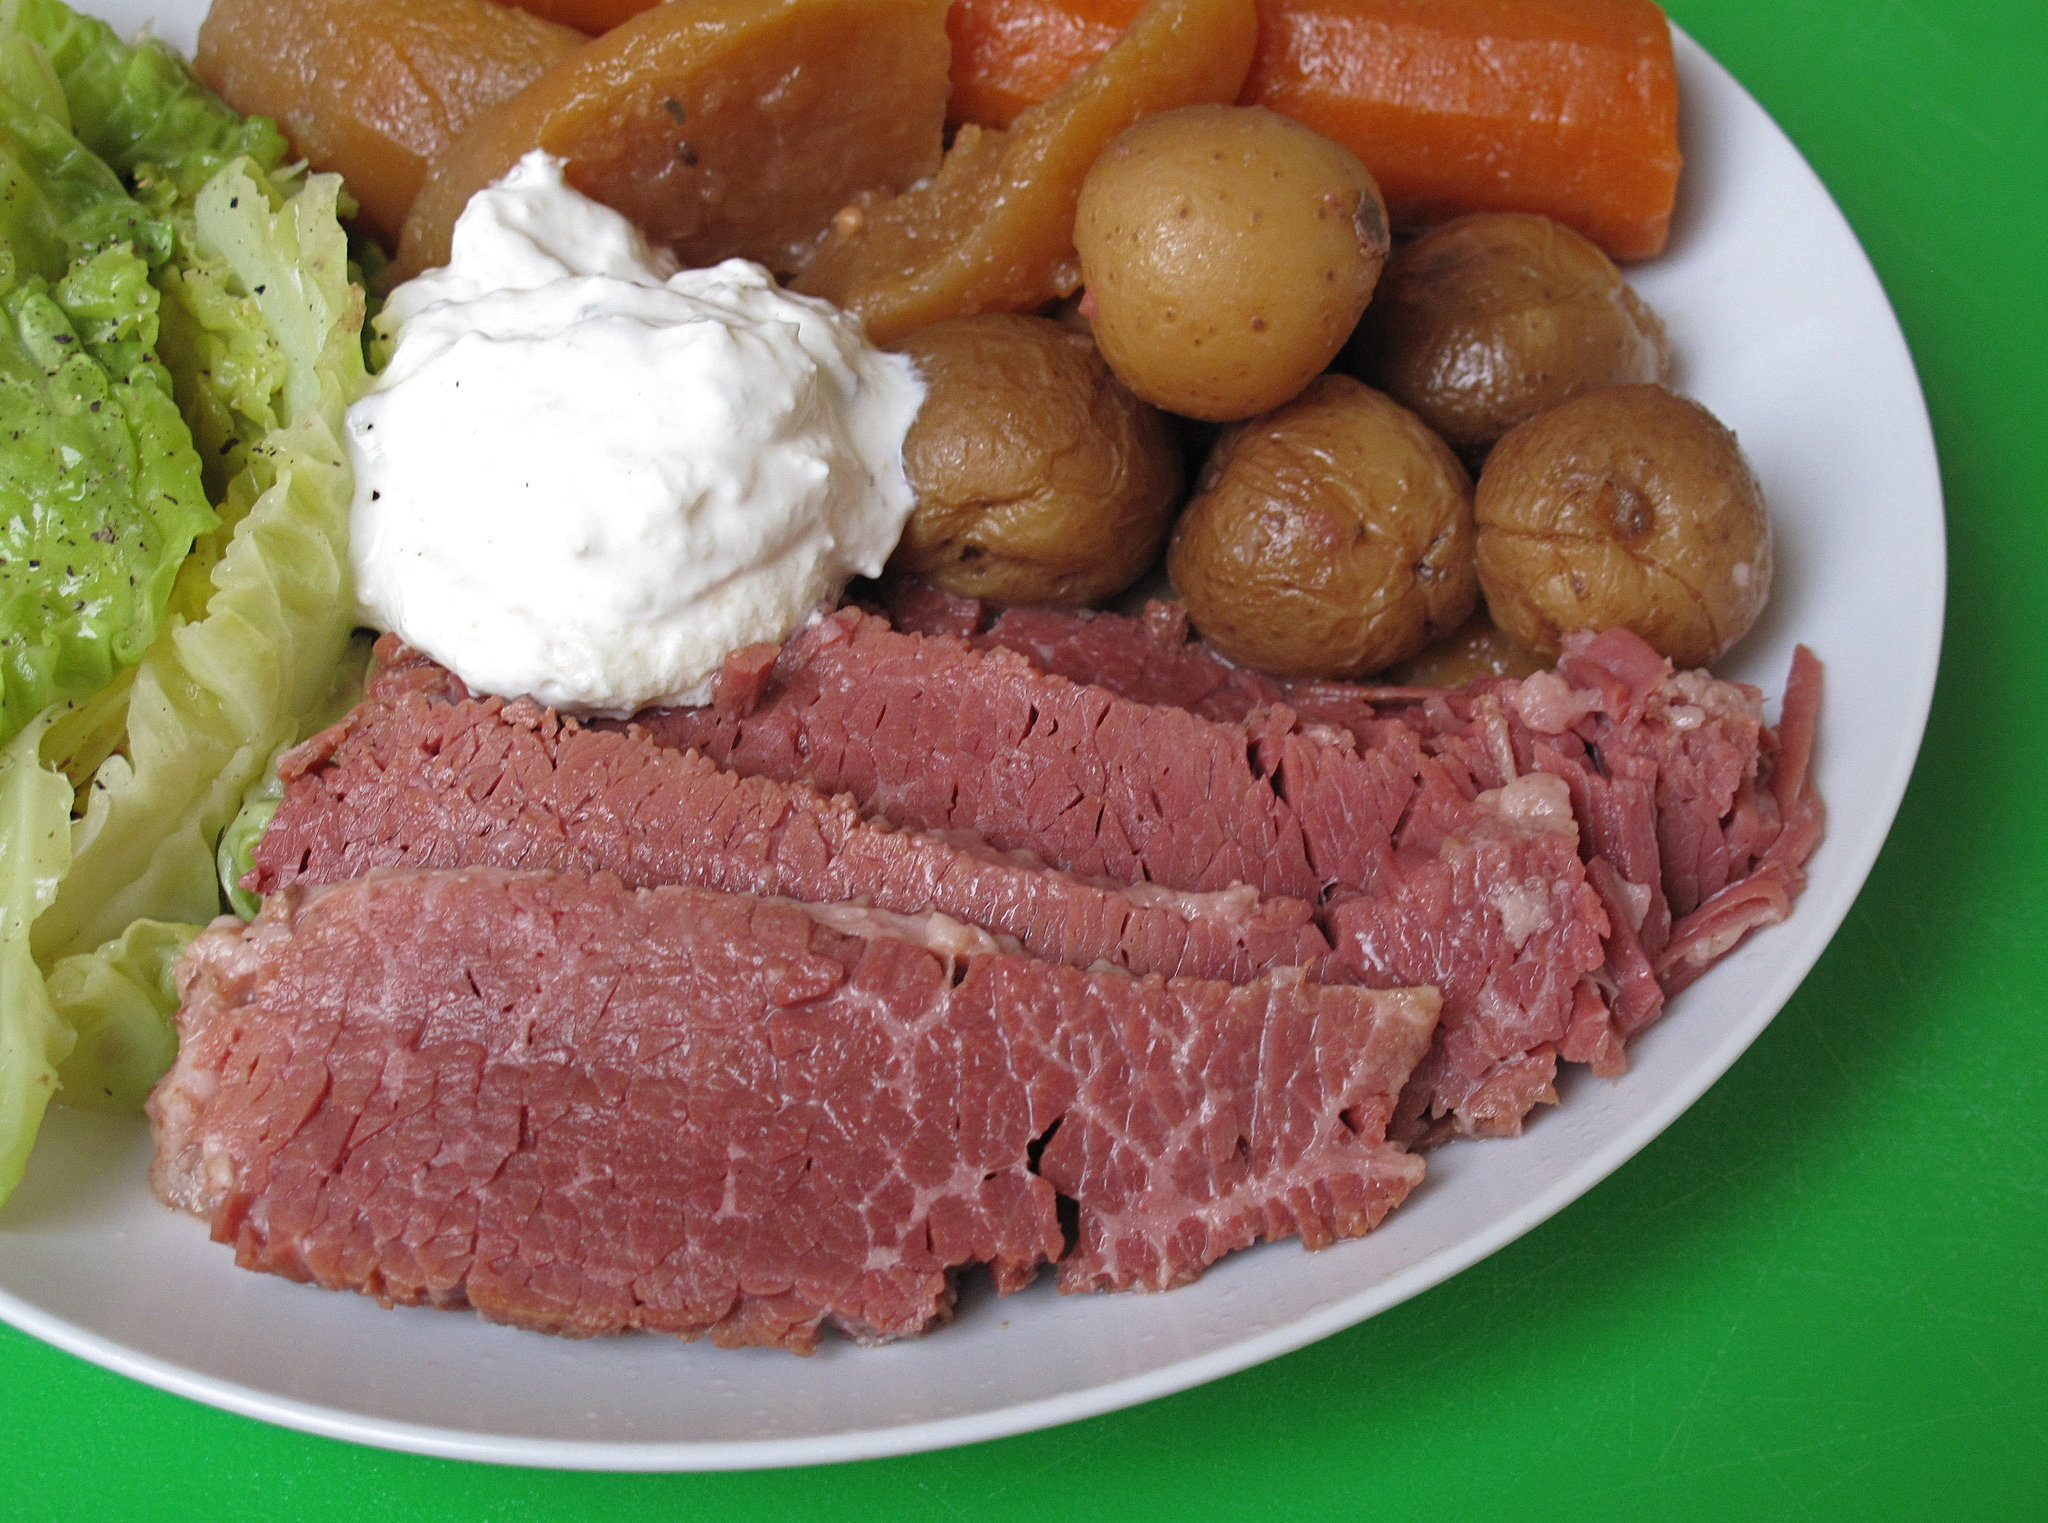 ... corned beef and cabbage dish is one that you'll fall in love with